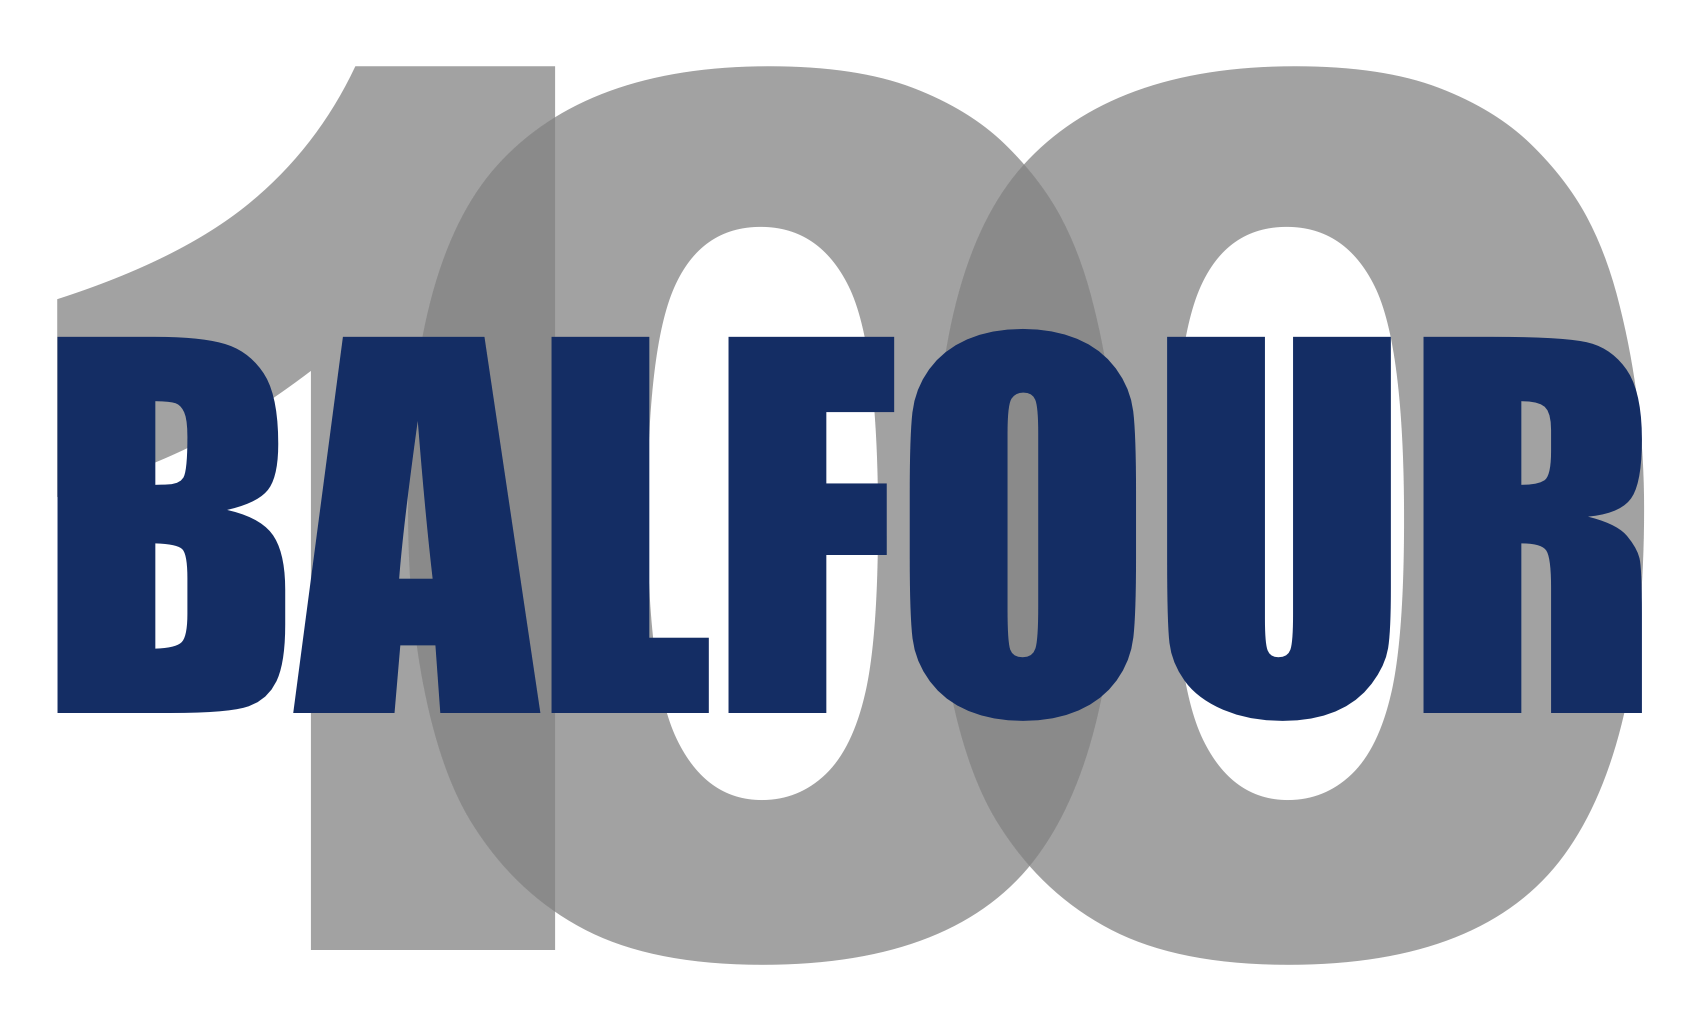 Balfour at 100: A legacy of Racism and Propaganda